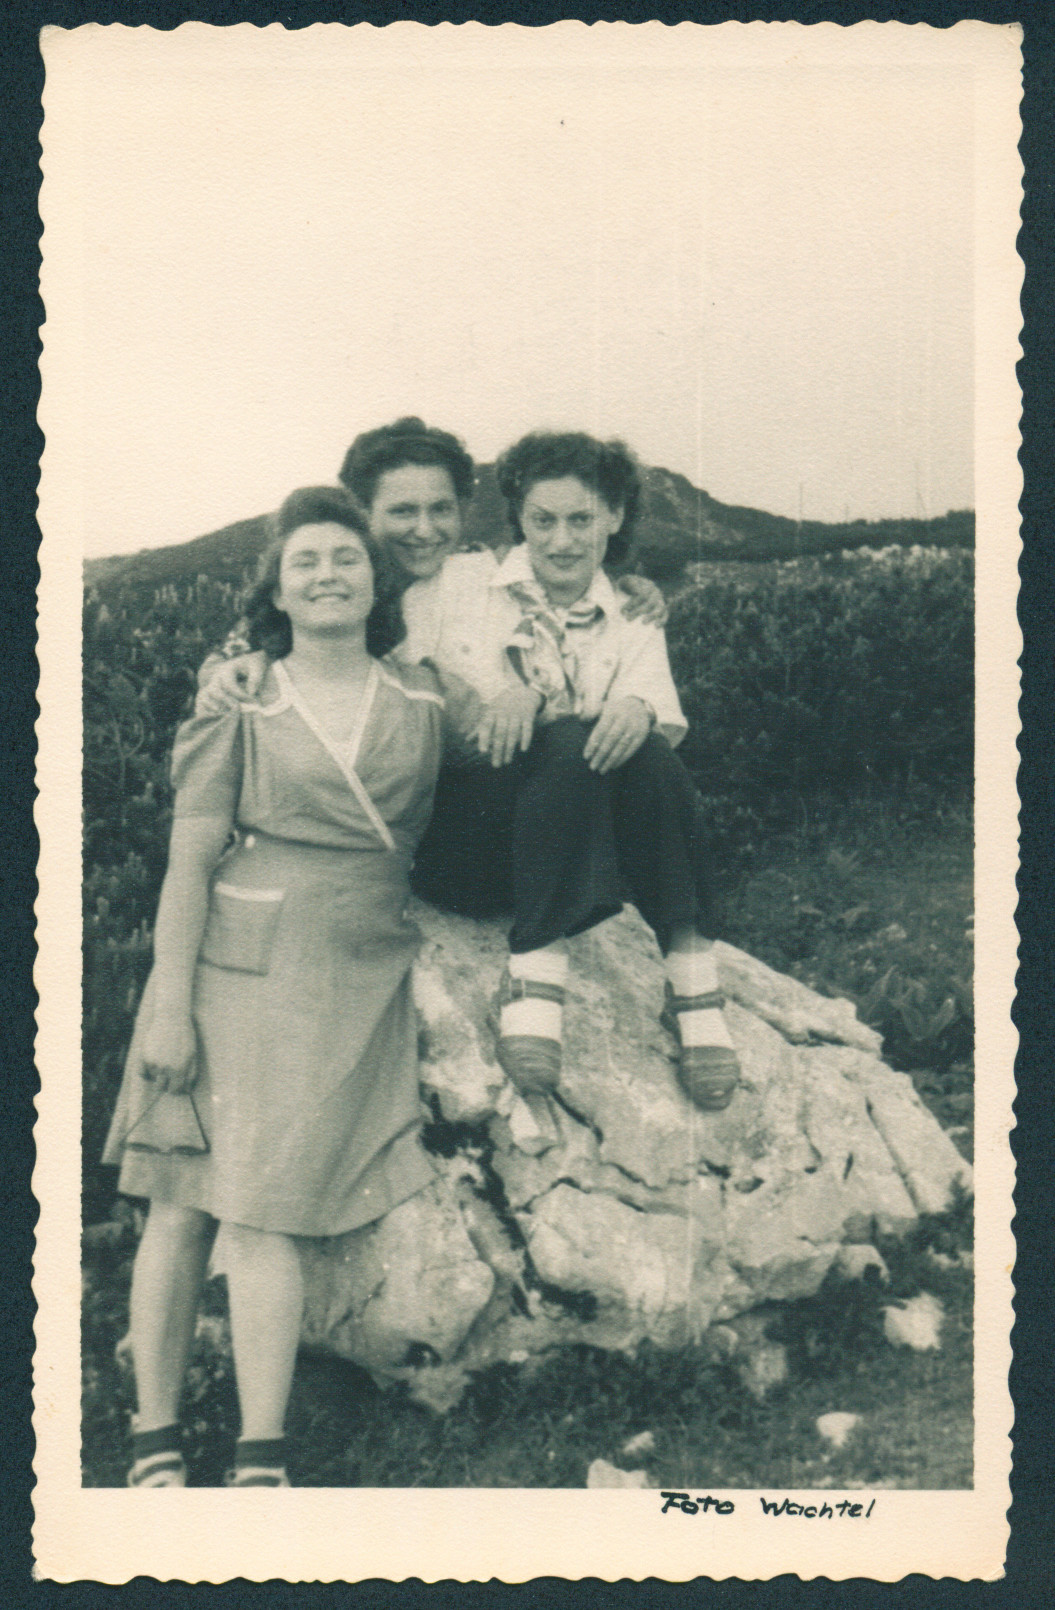 Three Jewish women pose on a large rock in a field near the Bindermichl displaced persons camp.  Ada Breitkopf is pictured on the left.